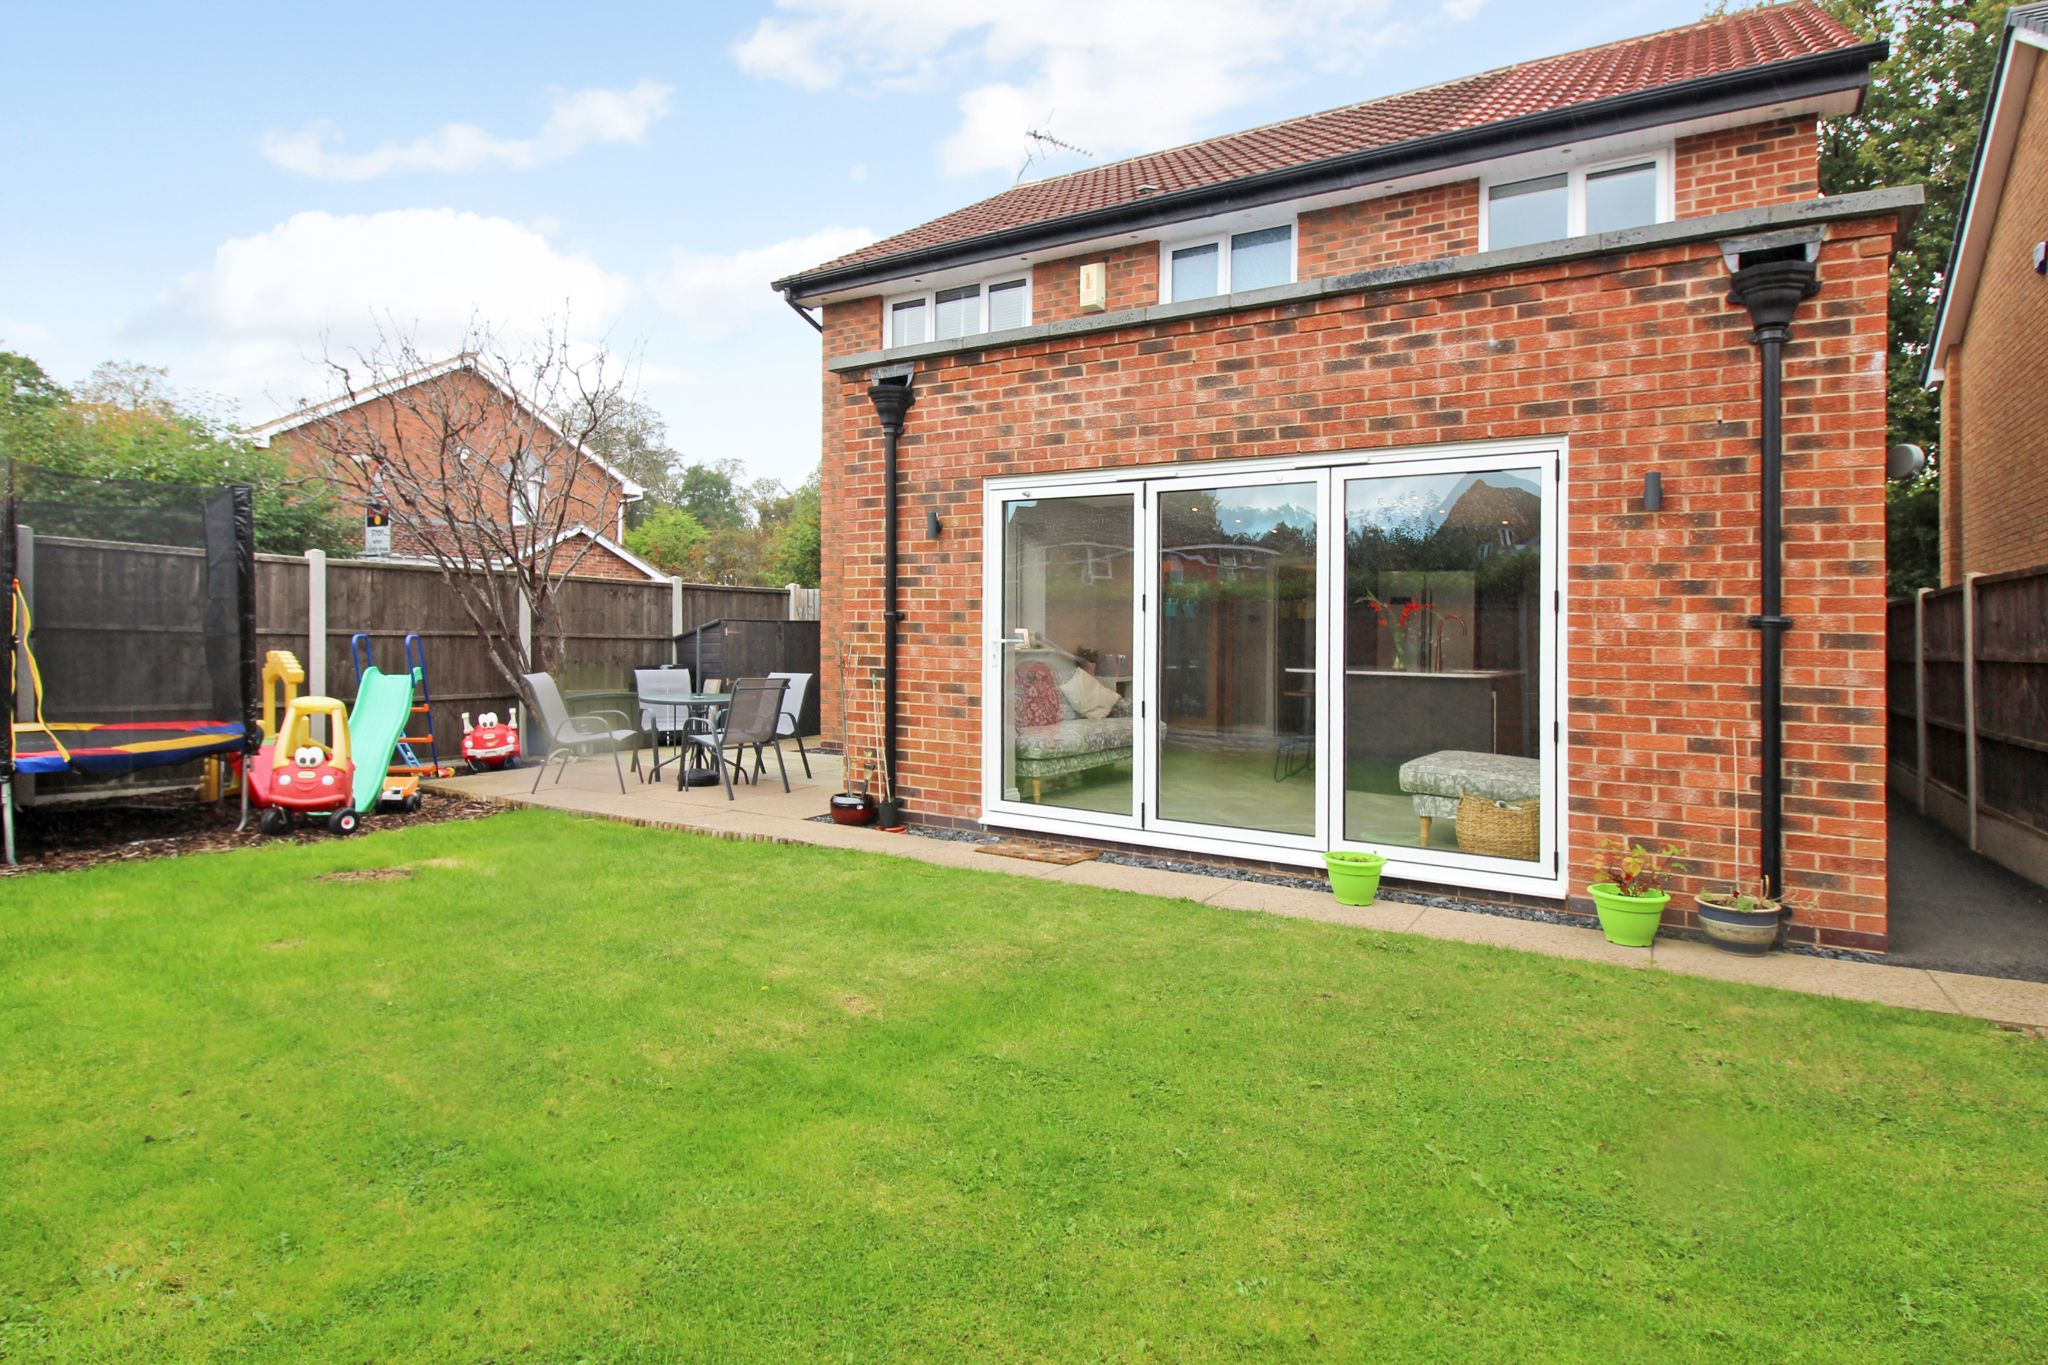 4 bedroom detached house For Sale in Solihull - Photograph 17.